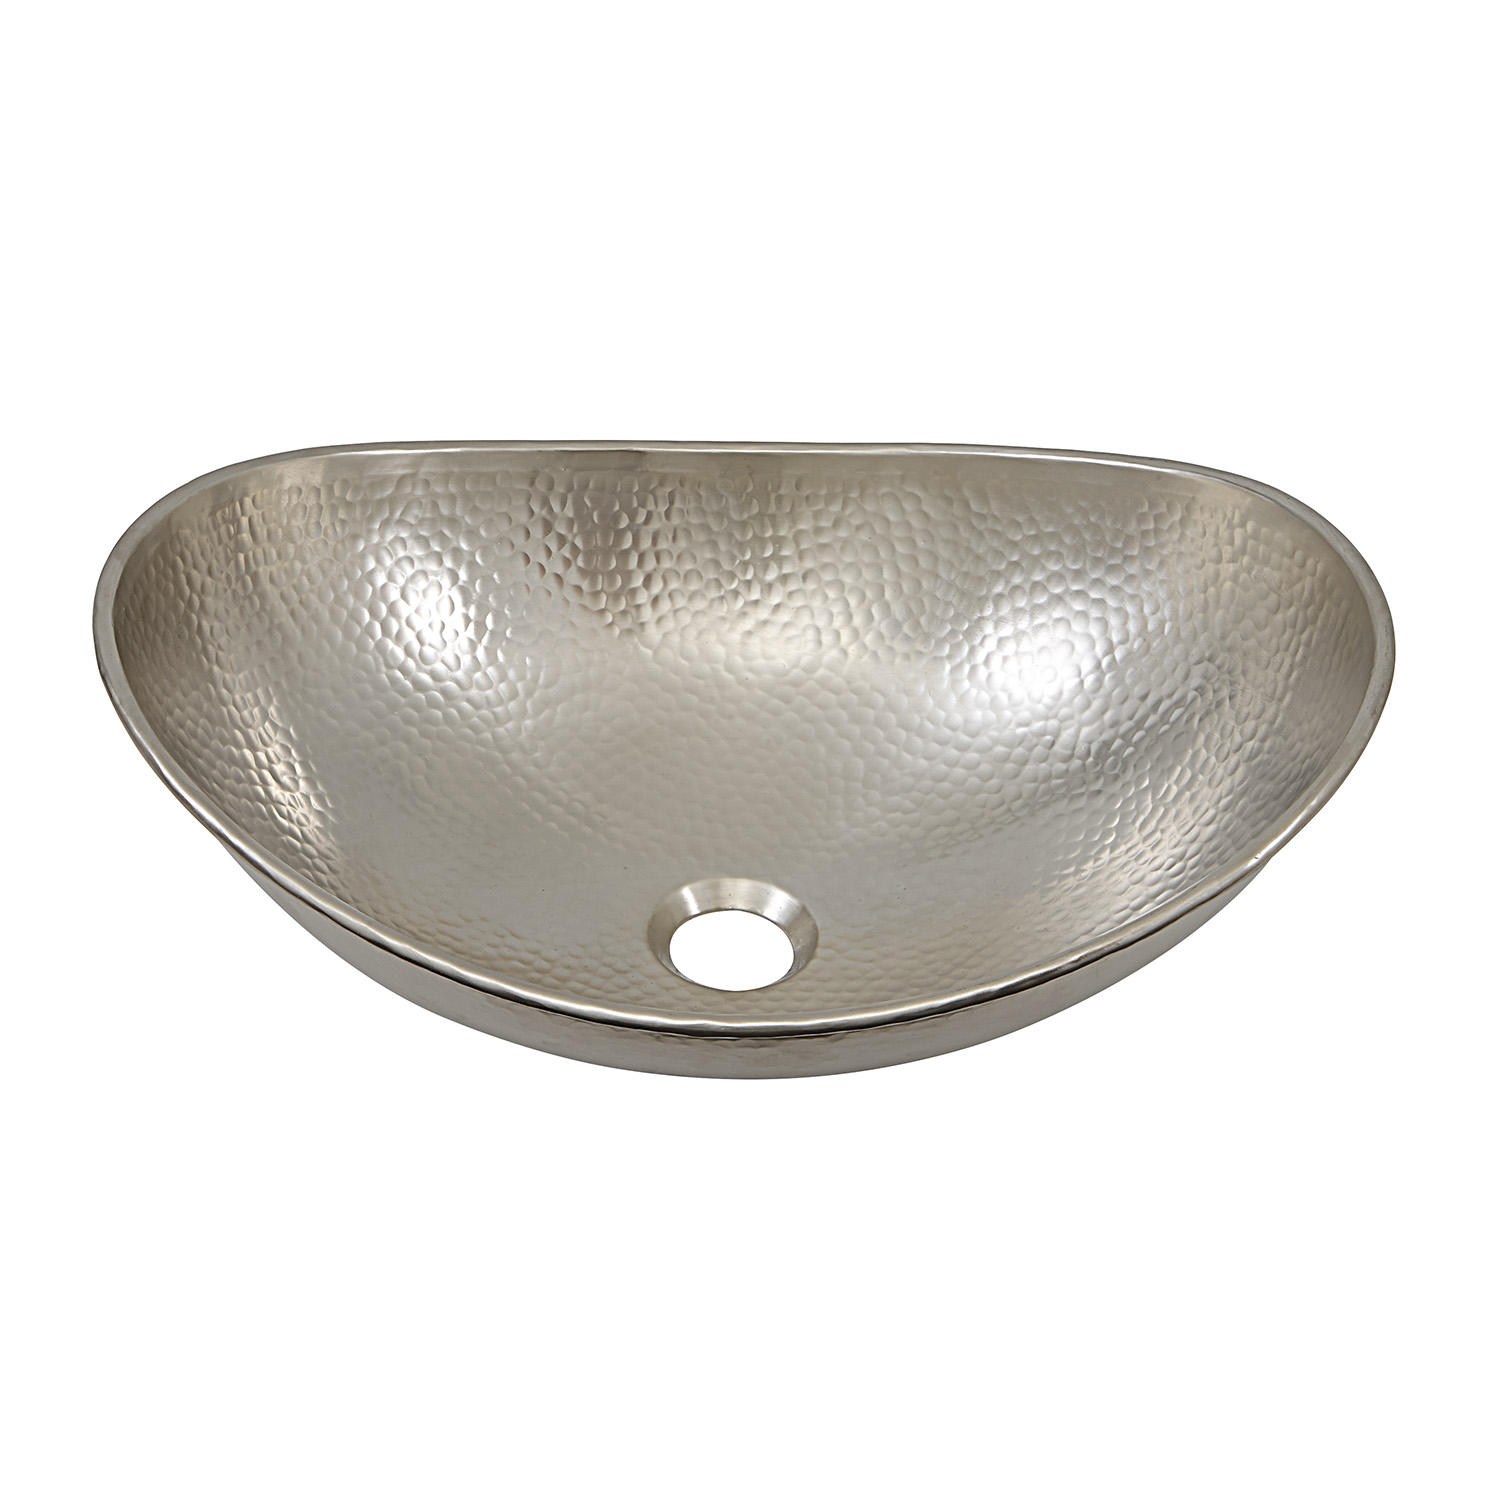 Bathroom Sinks Overstock hobbes vessel nickel bathroom sinksinkology